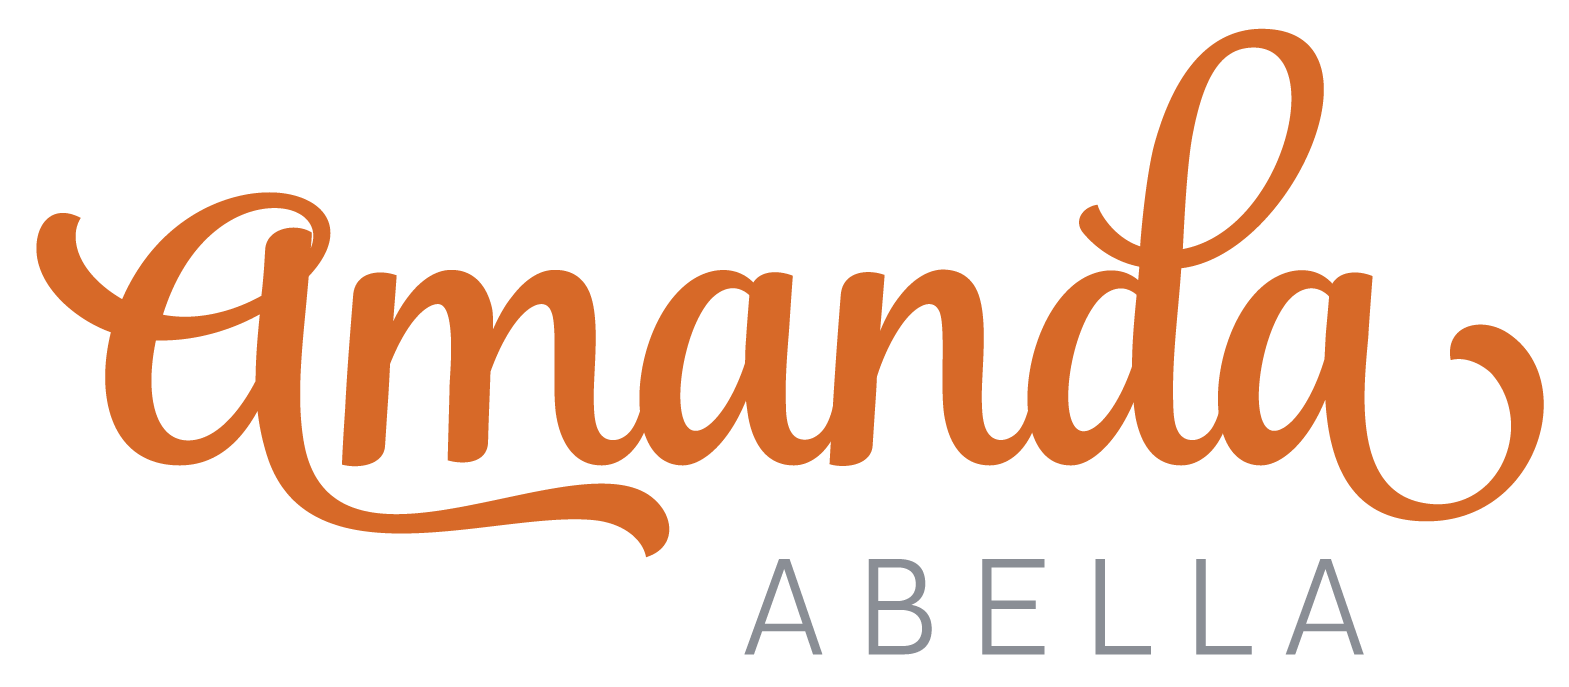 Amanda Abella LLC Help Center home page